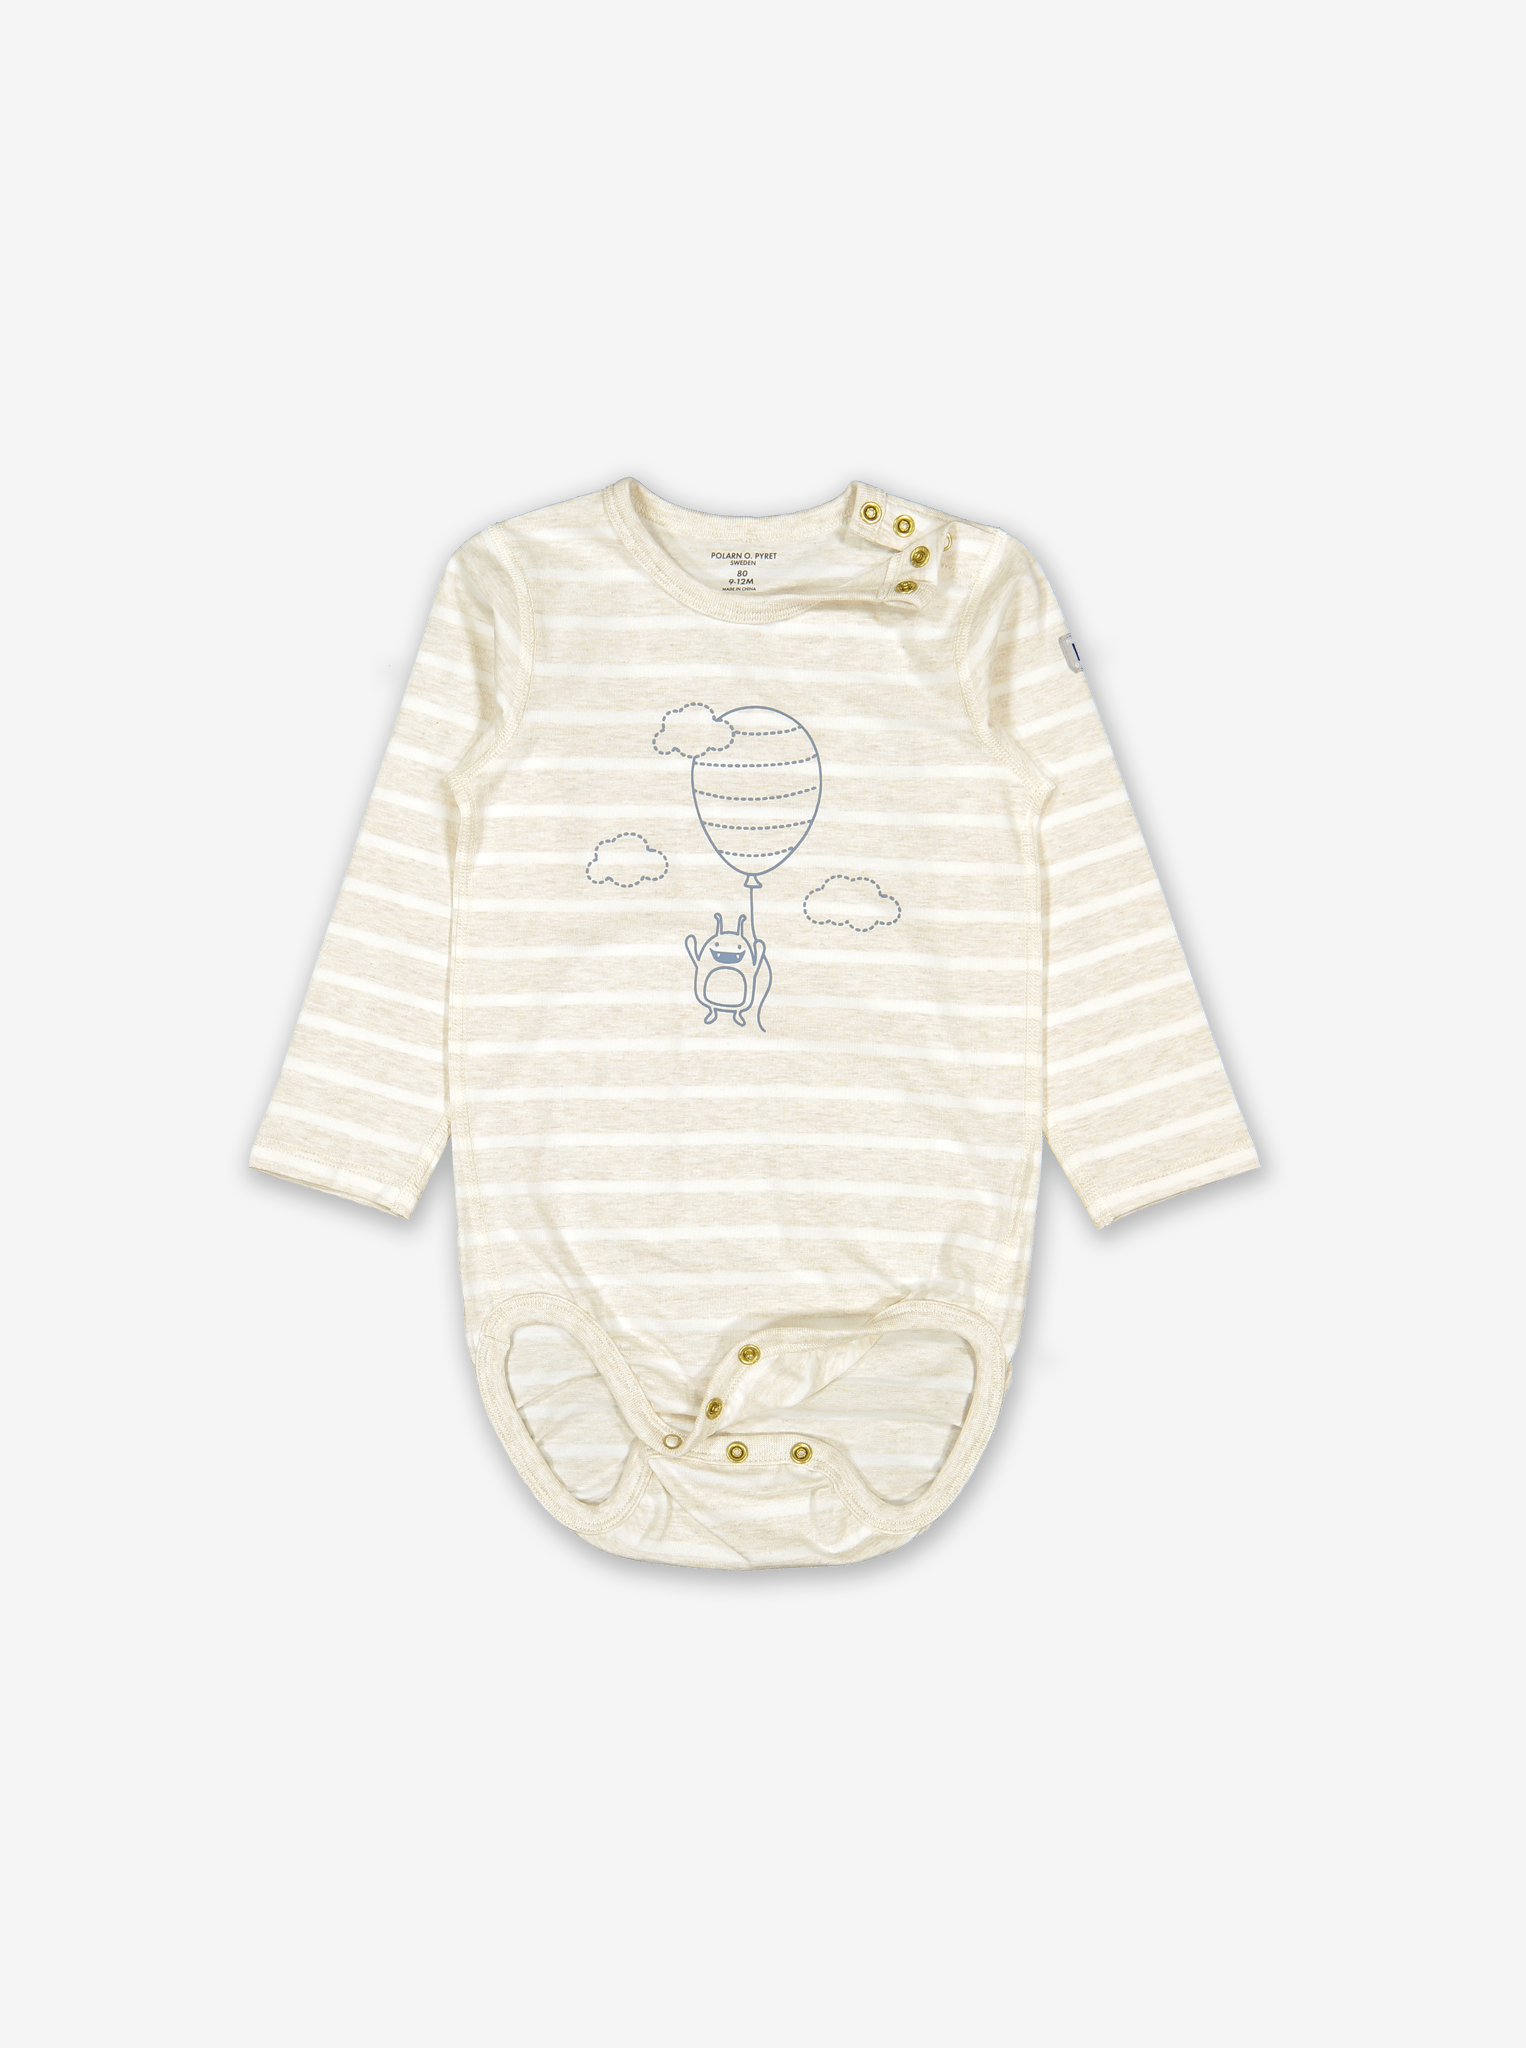 Striped Balloon Baby Bodysuit-Unisex-6-12m-White